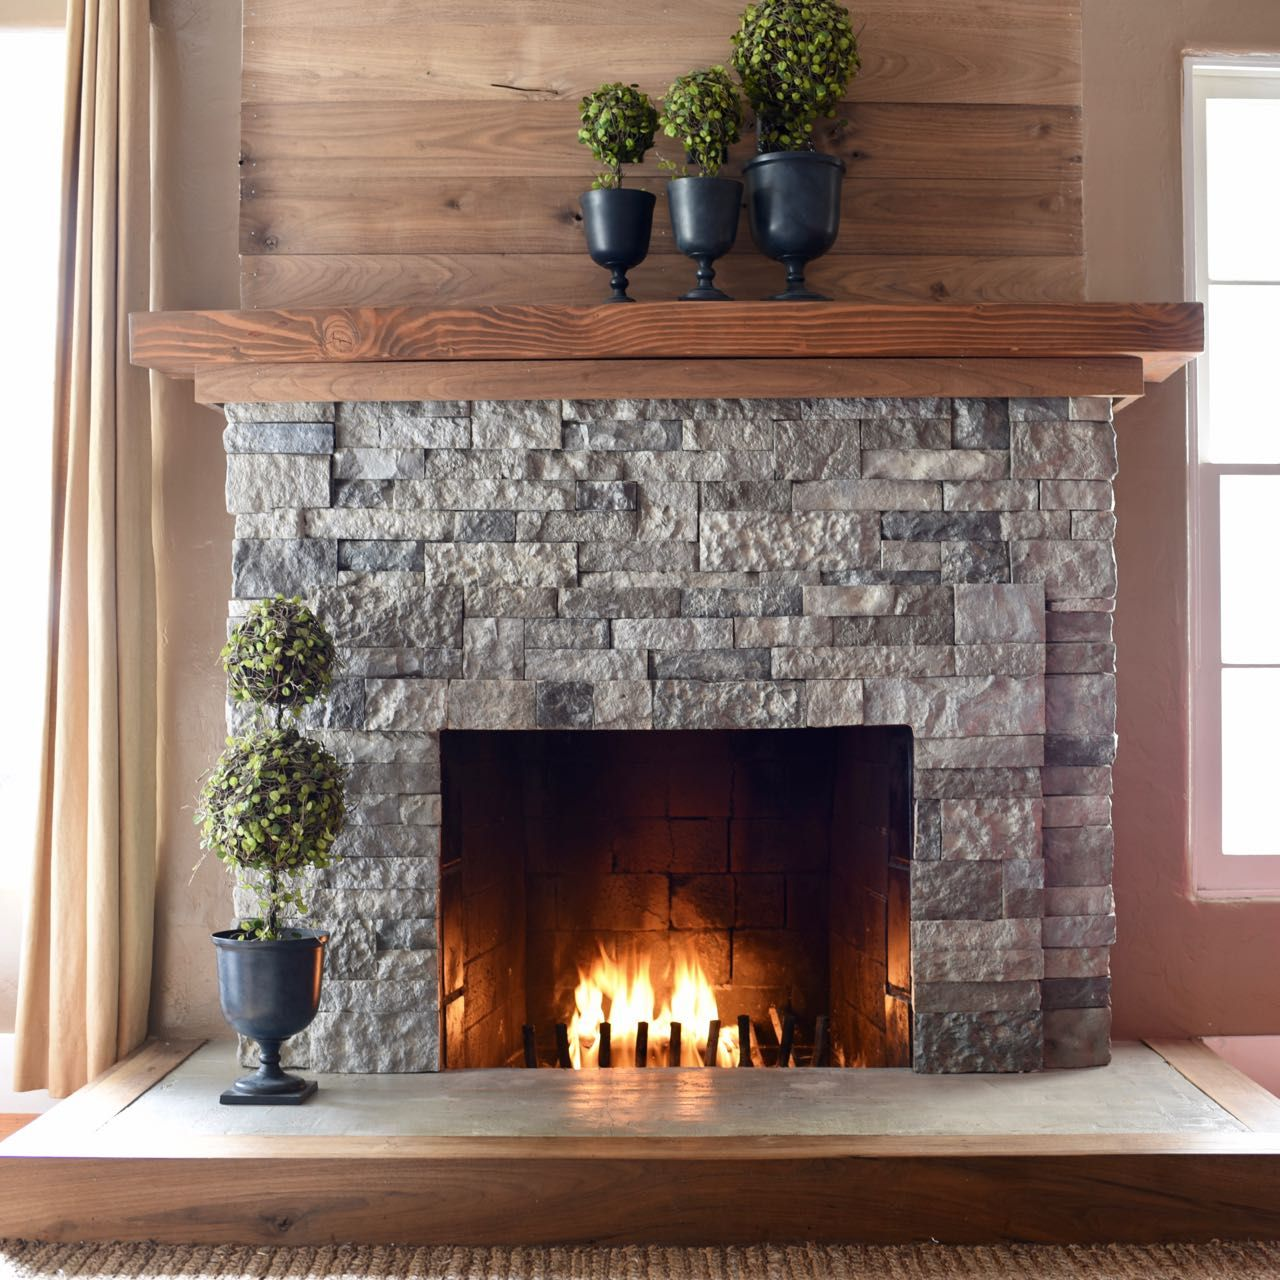 AirStone Fireplace Makeover From Ugly to Incredible For the